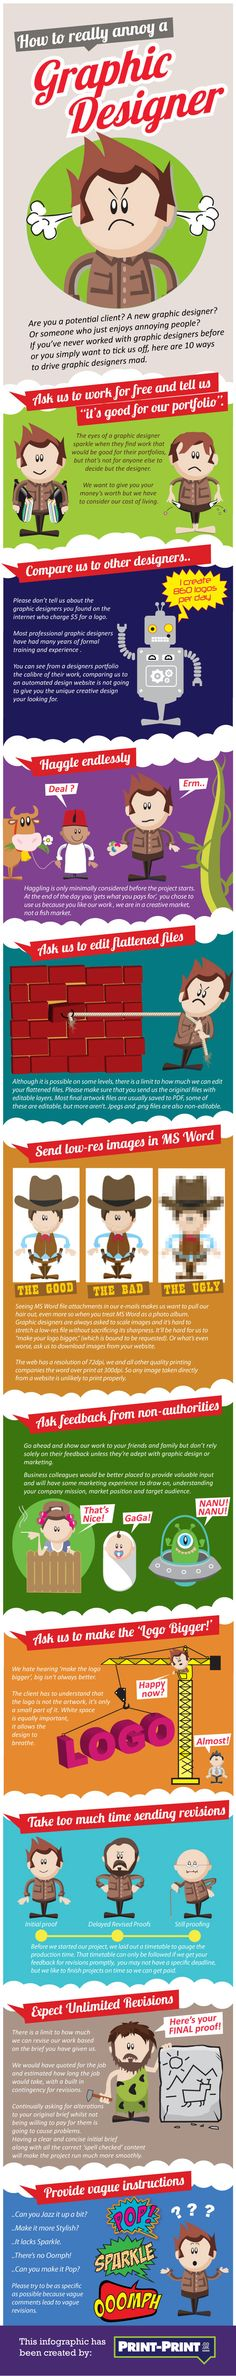 How to Really Annoy a Graphic Designer #infographic #HowTo #Design